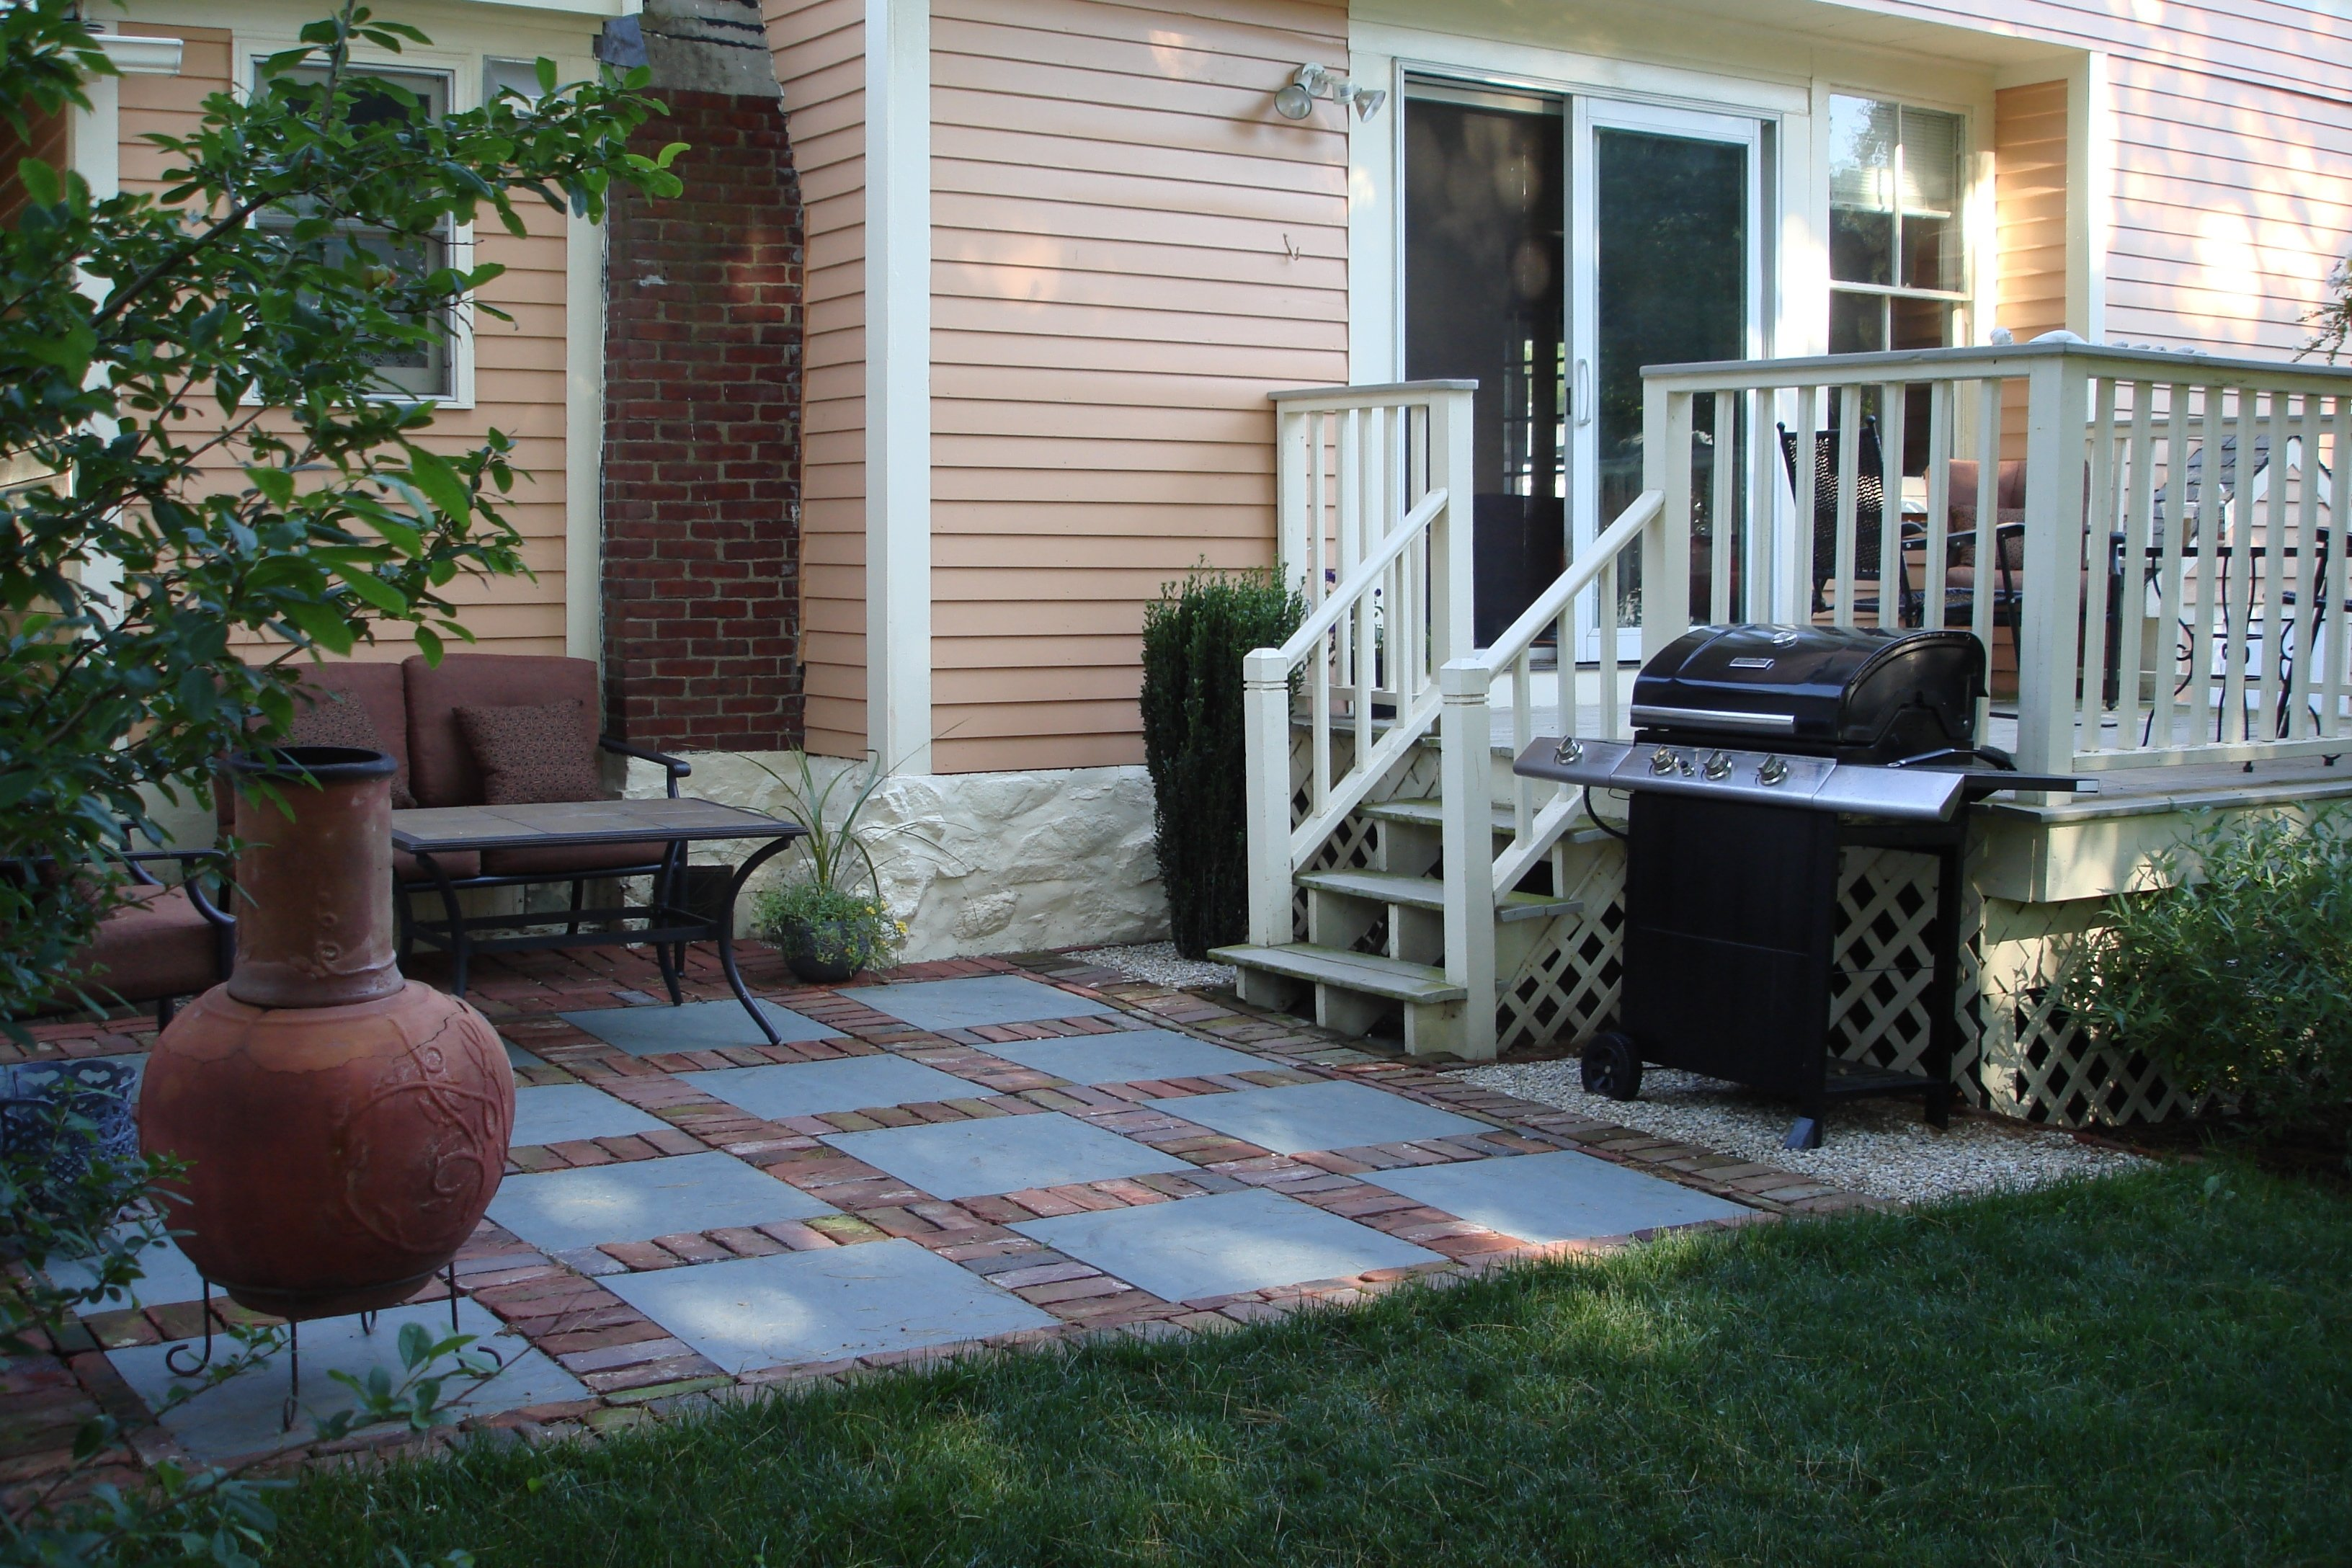 10 Lovely Small Patio Ideas On A Budget patio design ideas on a budget with images savwi 2020